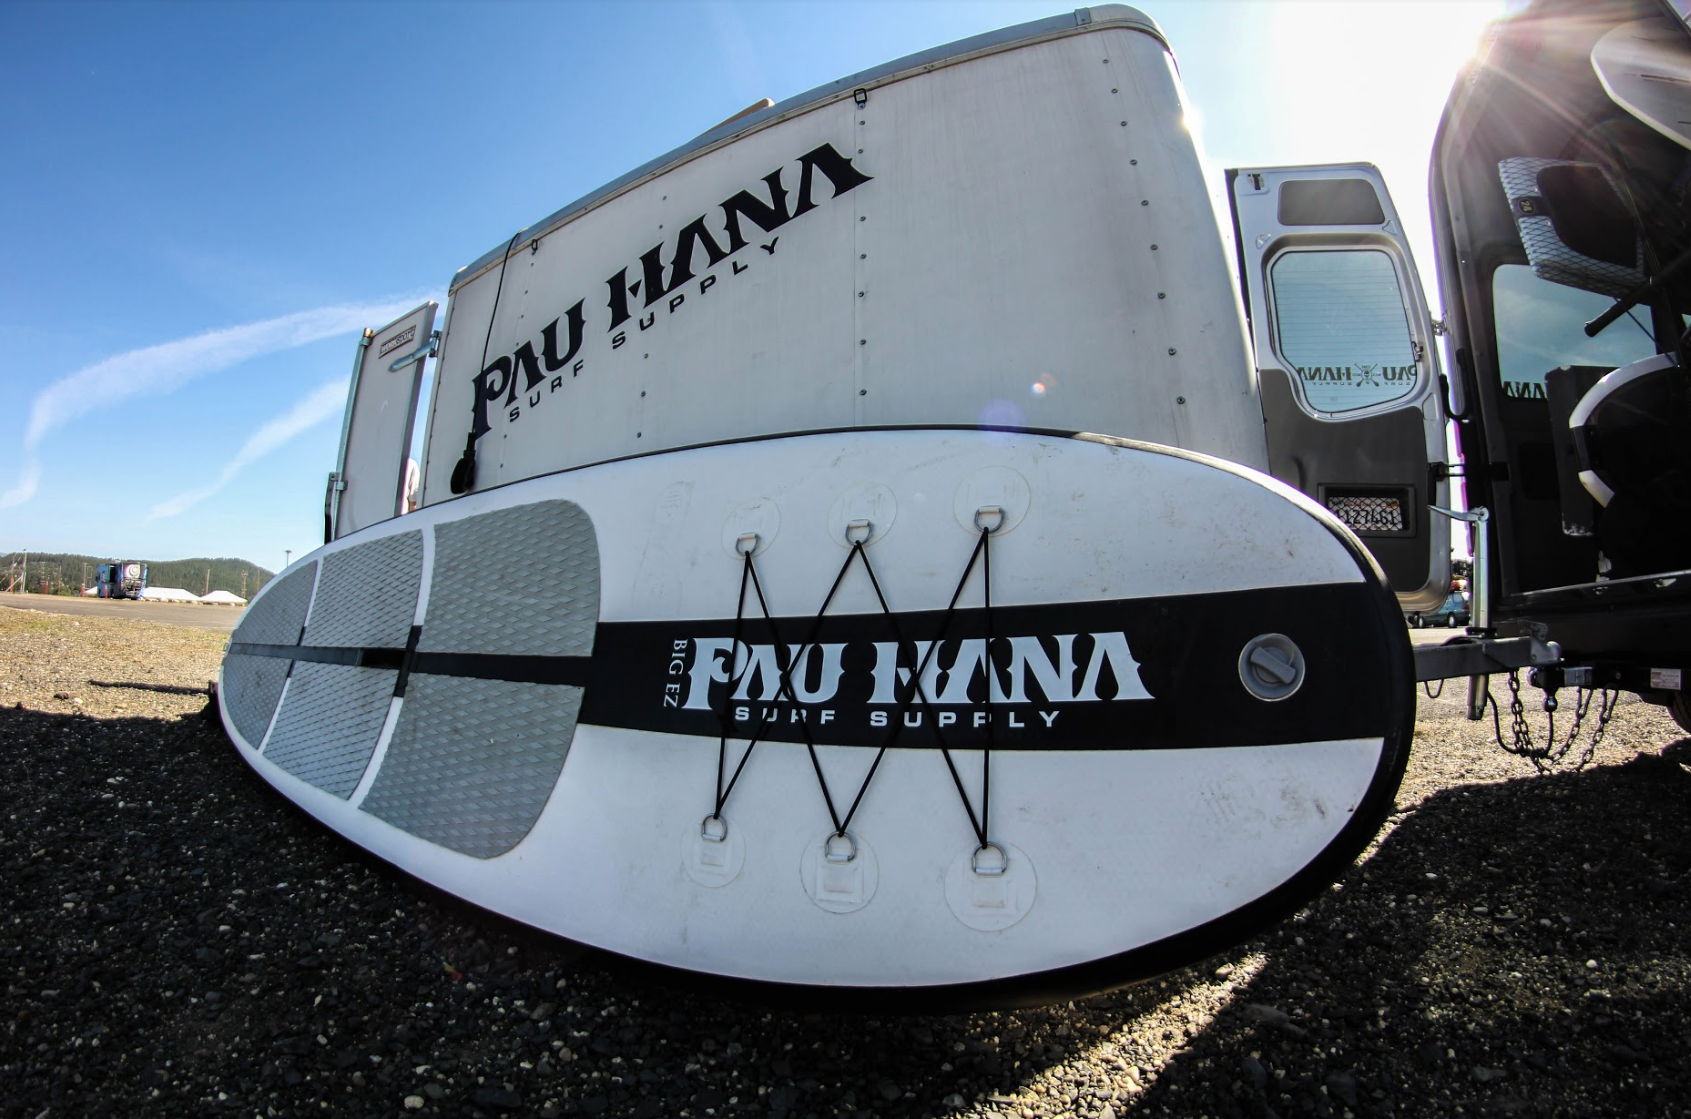 pau hana surf supply big ez inflatable sup board next to a van and trailer